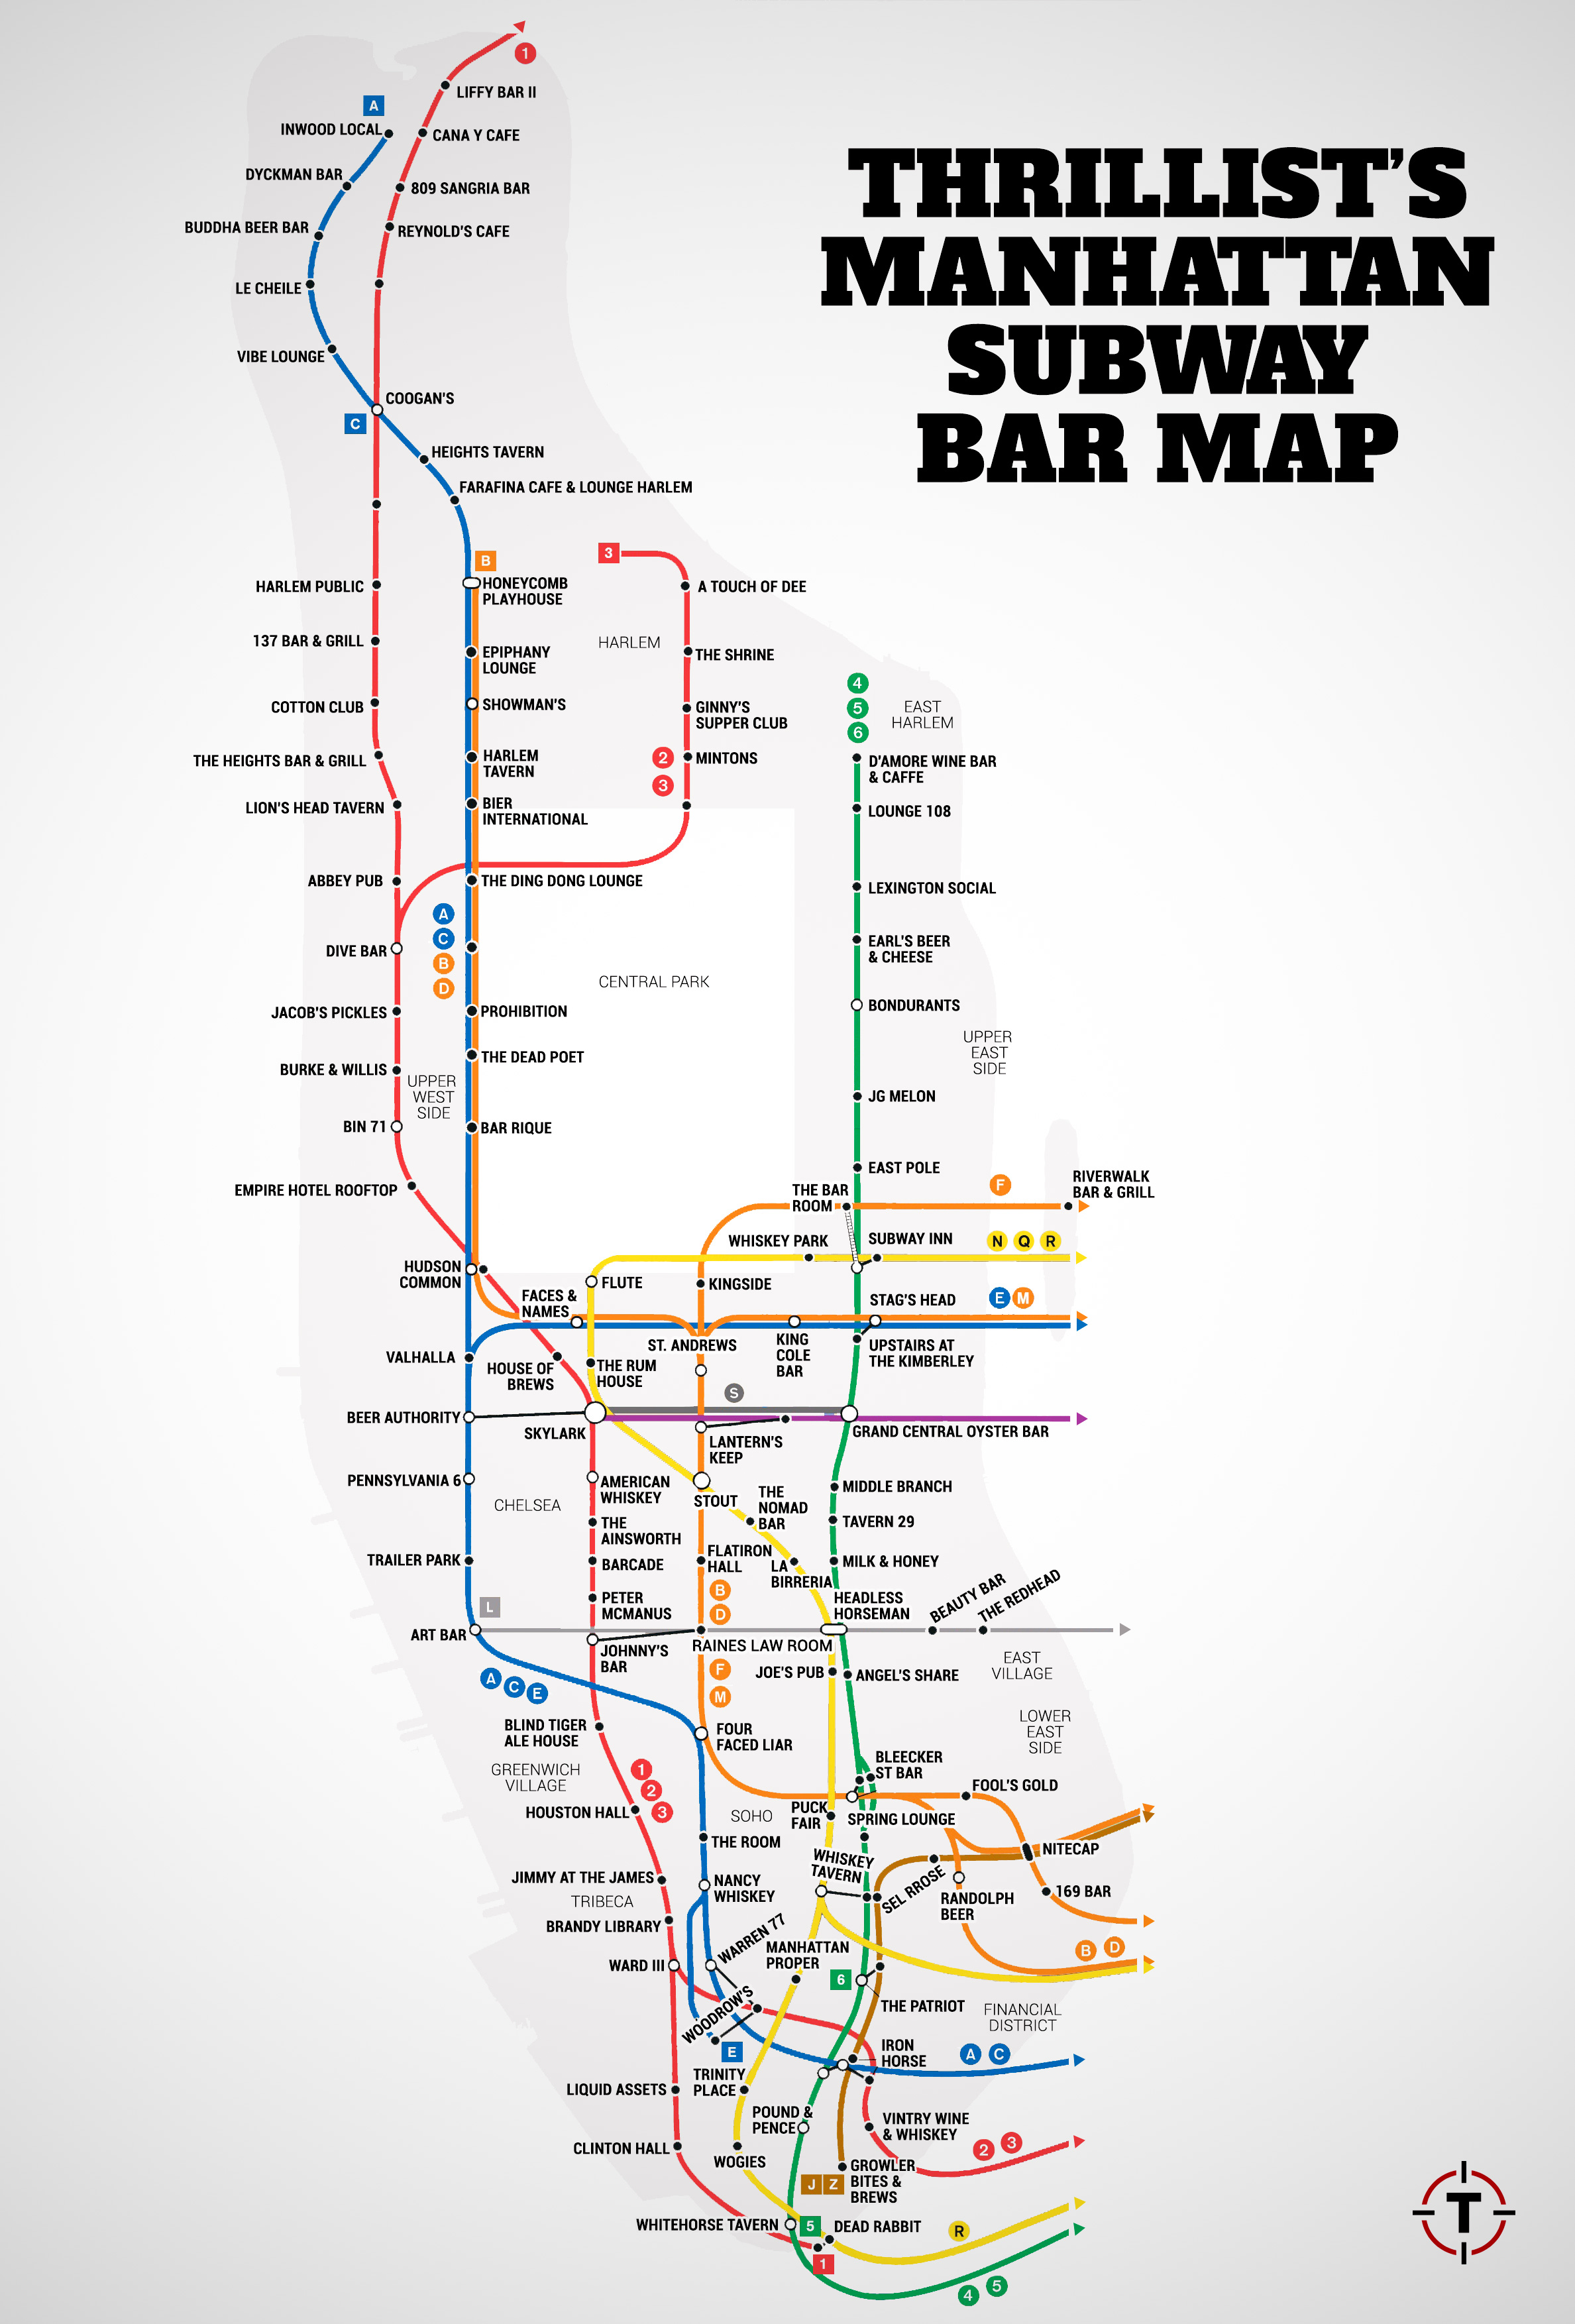 Howto Readthe Nyc Subway Map.A Map That Shows The Bars Nearest To Each Nyc Subway Station